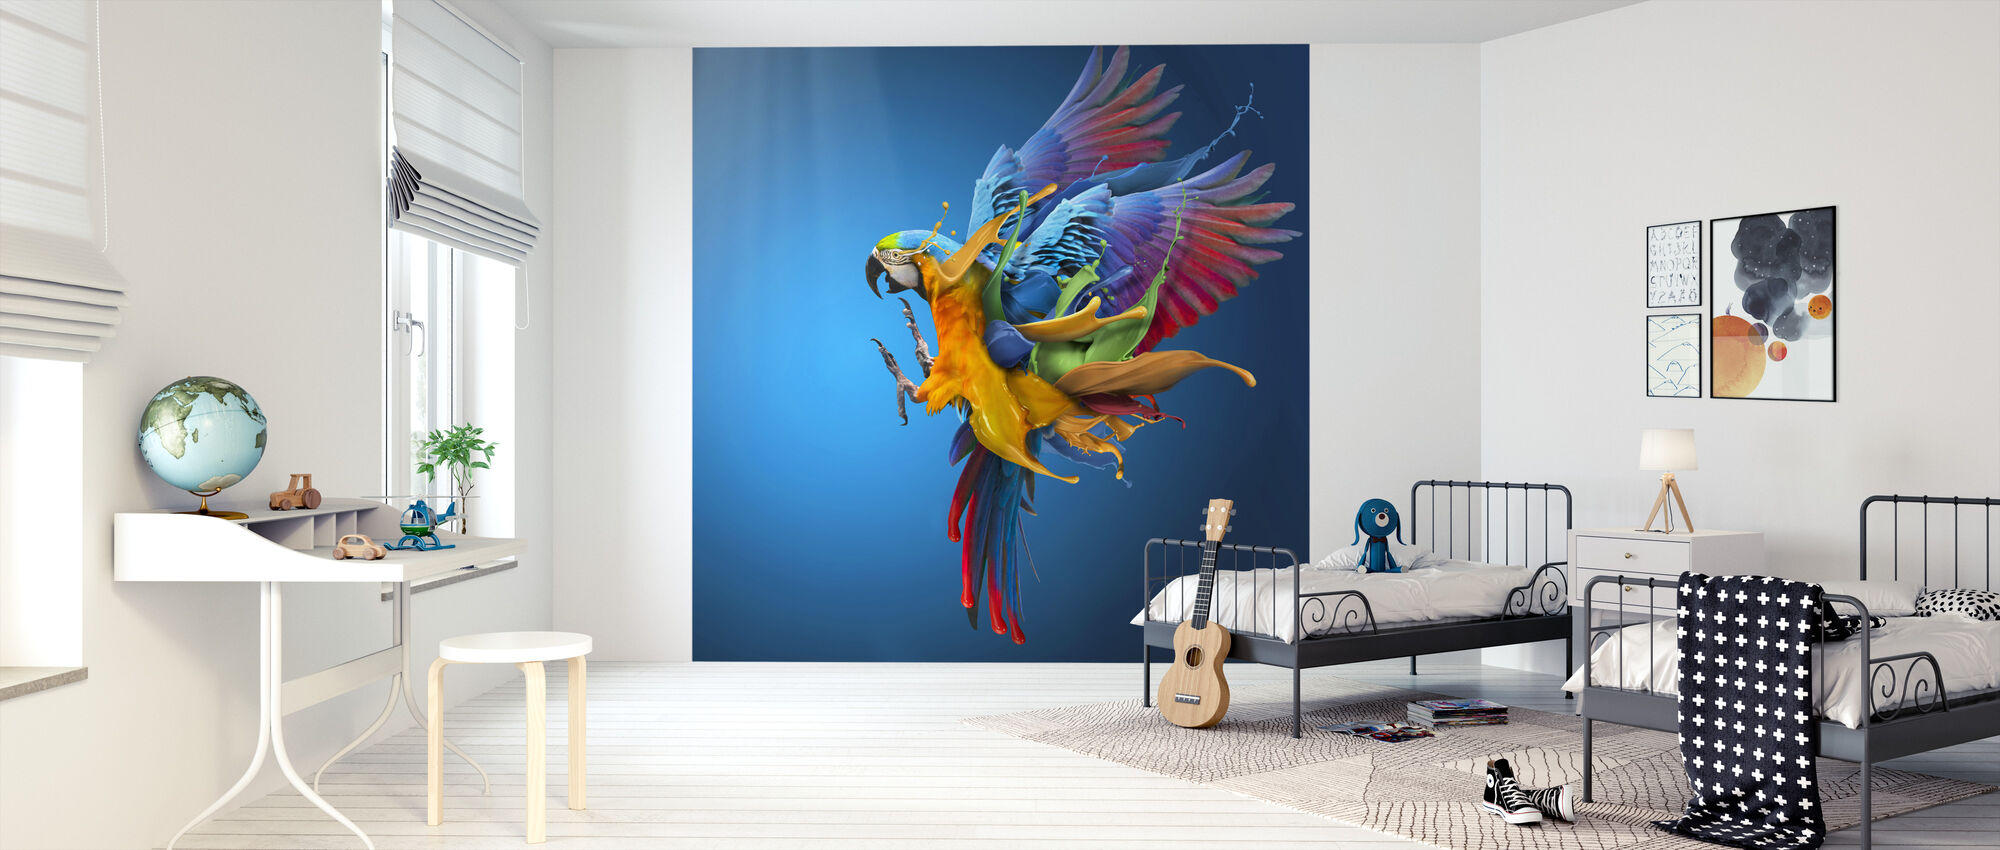 Flying Colours - Wallpaper - Kids Room